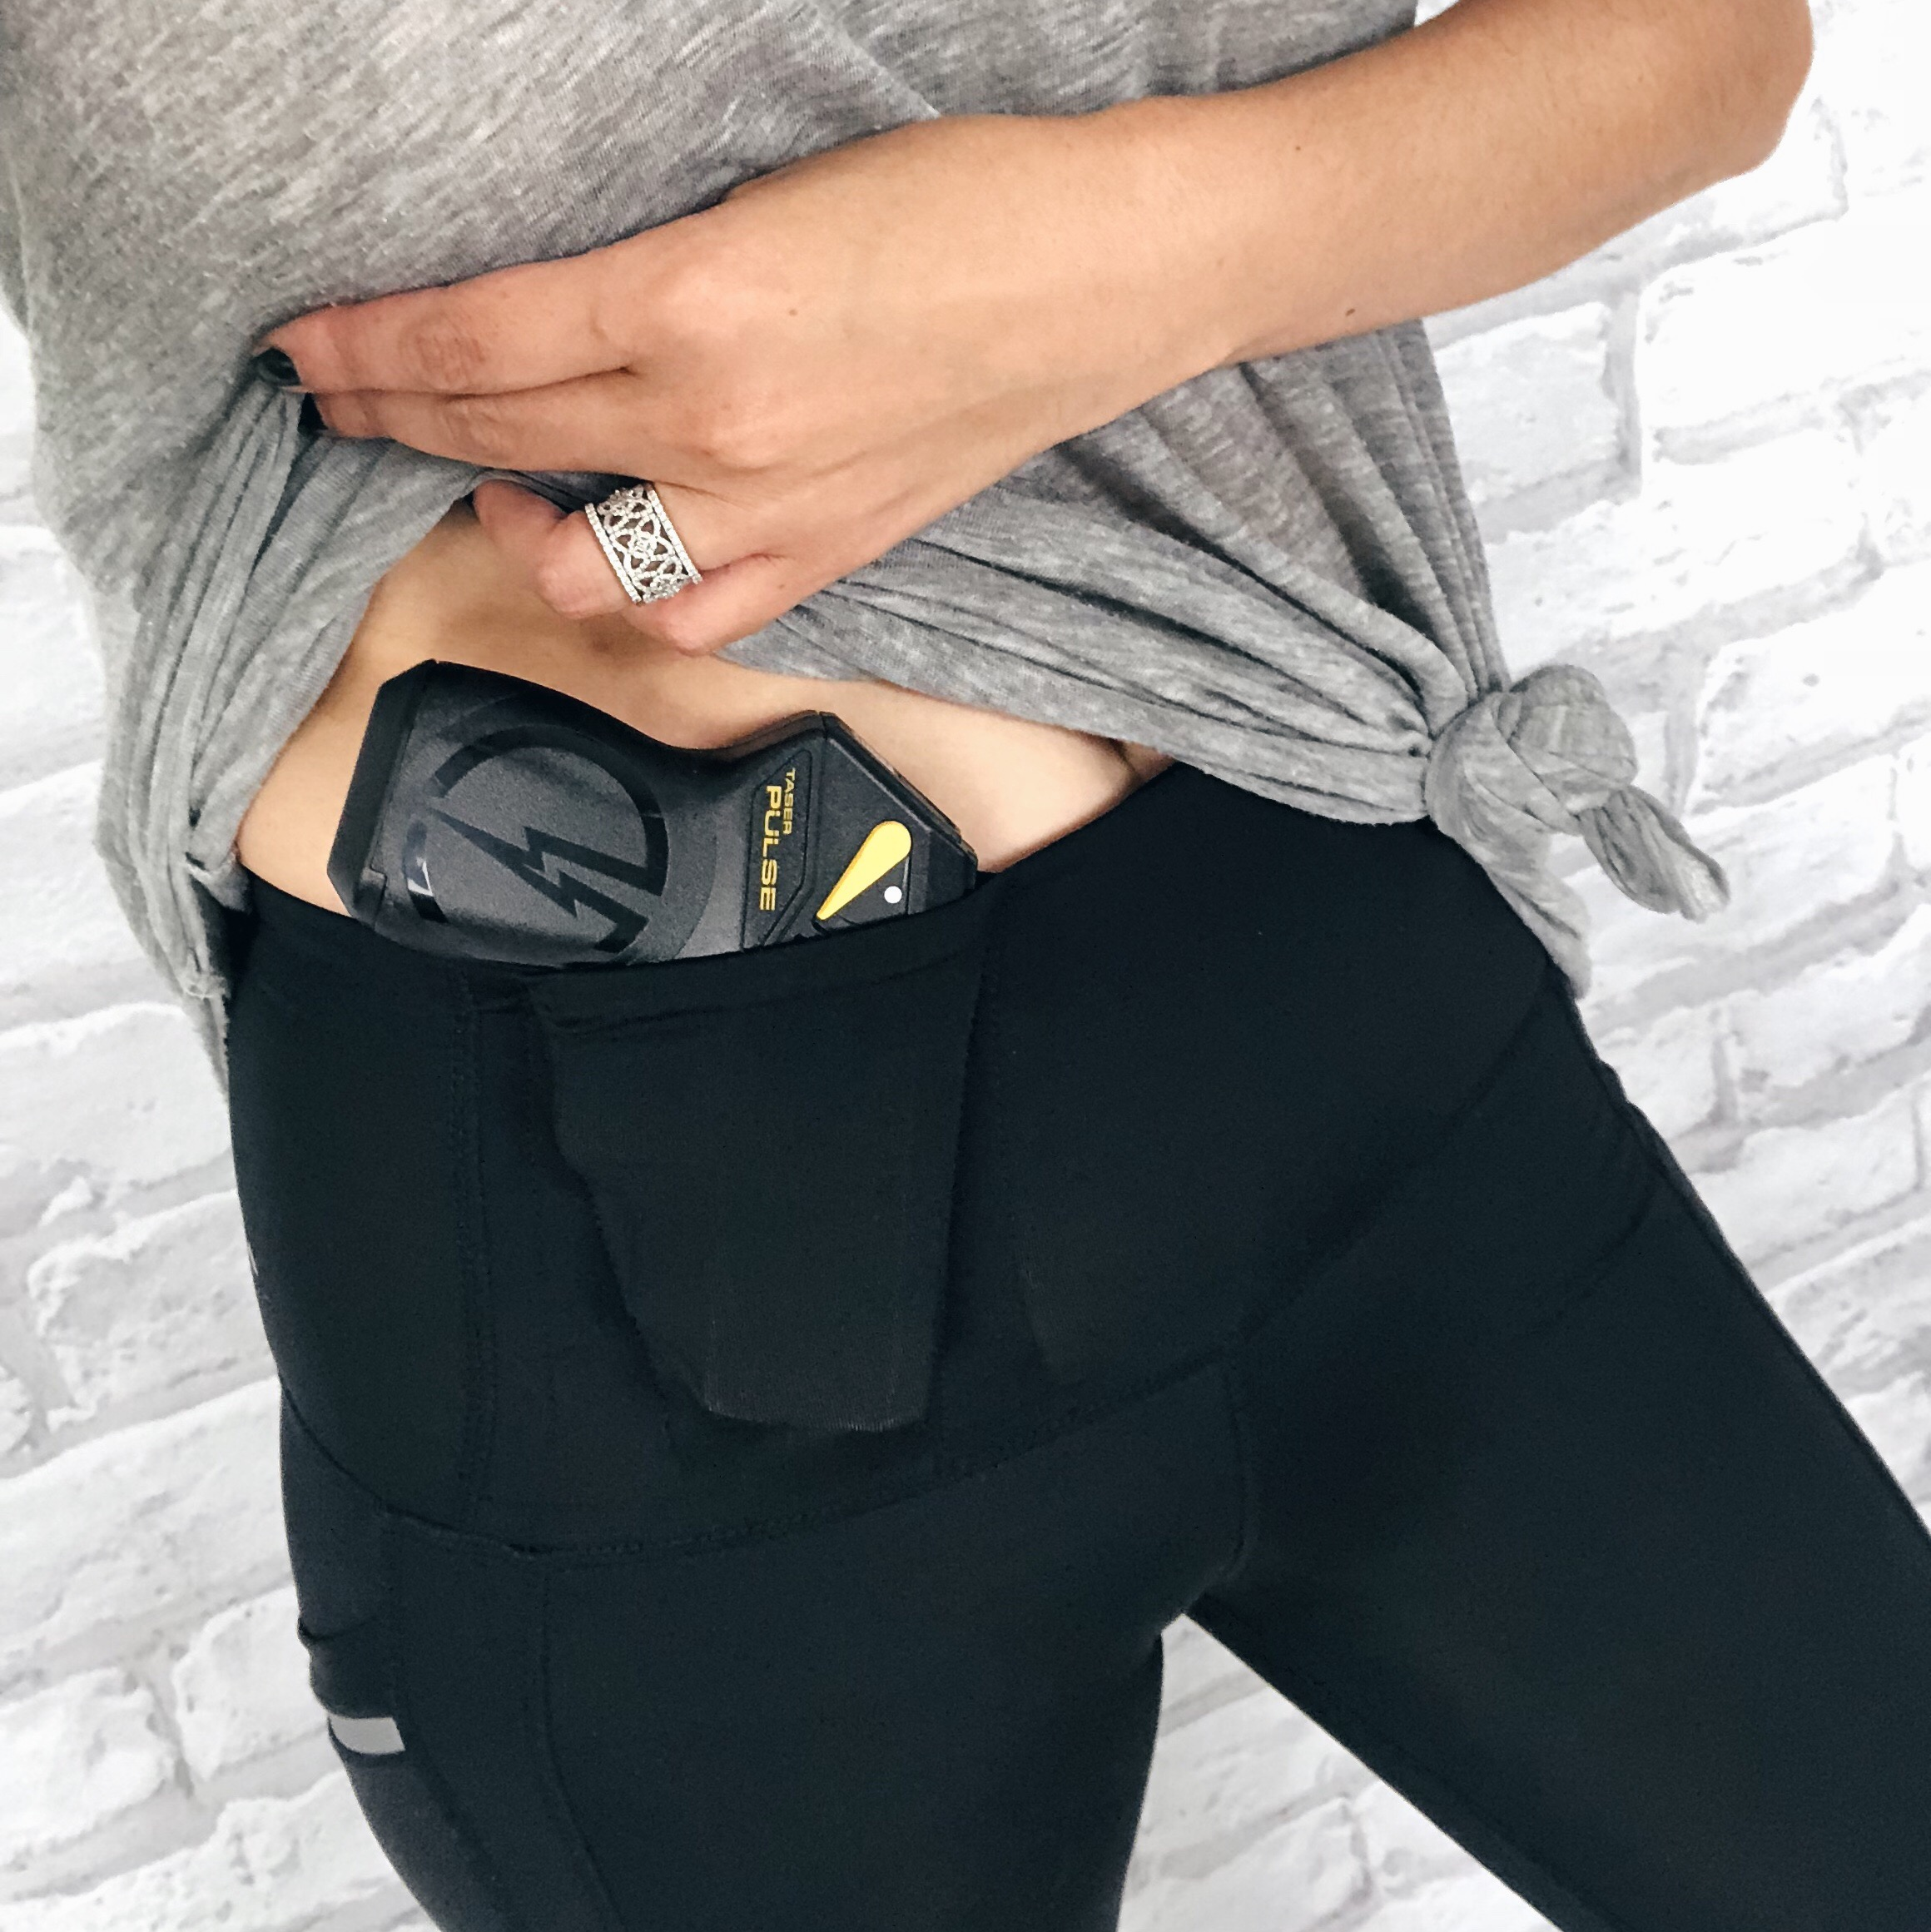 TASER Pulse   |   Alexo Athletica Carry Leggings   Use code '  AlexoStyleMeTactical10  ' for 10% off your purchase